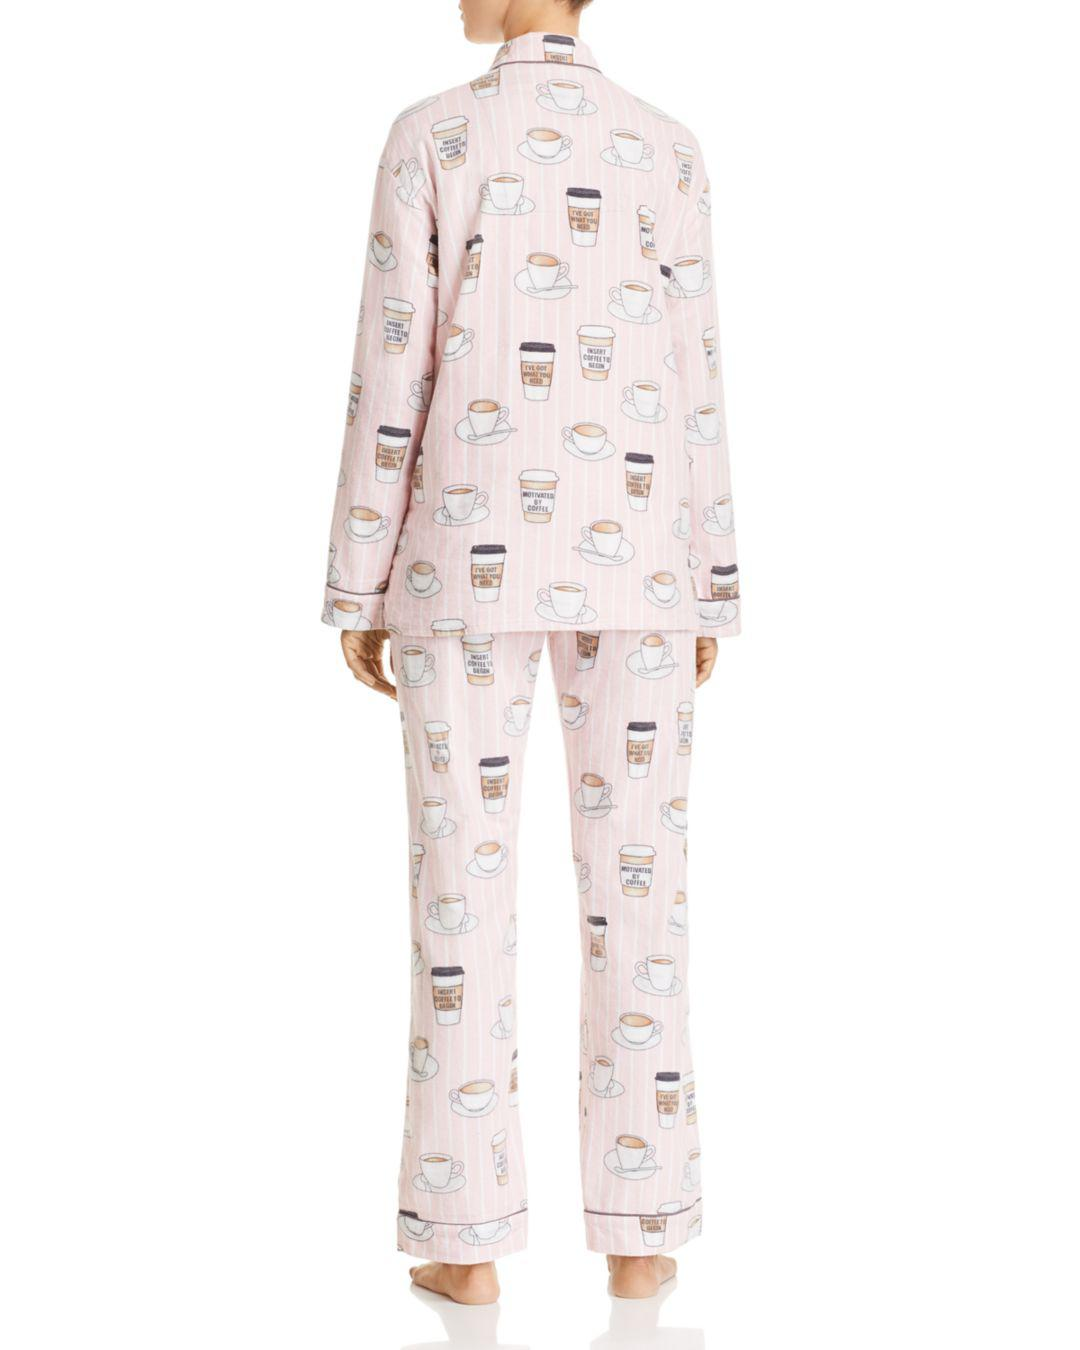 3cd729771a884 Lyst - Pj Salvage Rise   Grind Coffee Print Cotton Pajama Set in Pink -  Save 44%